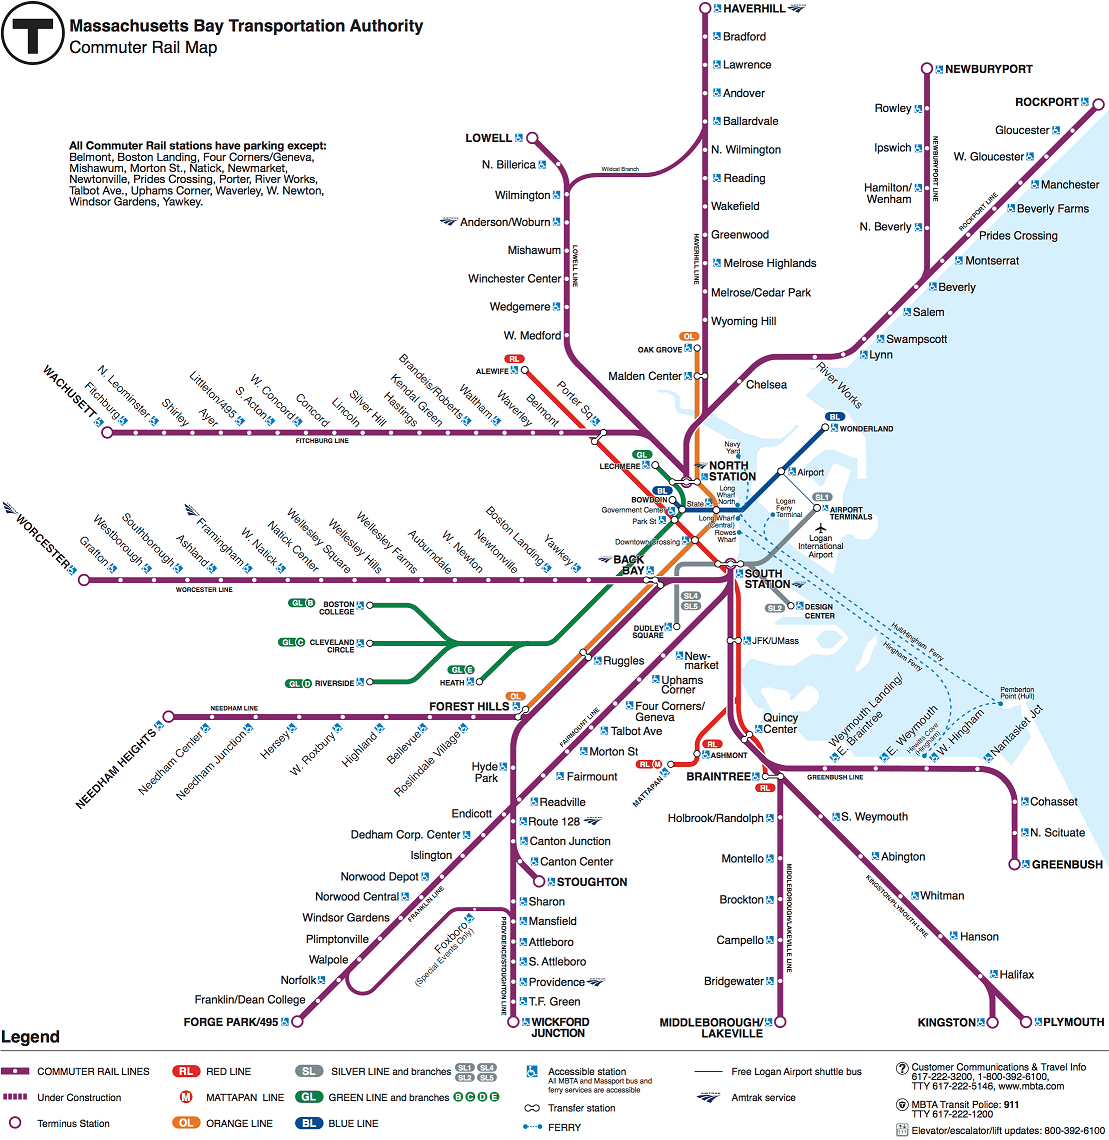 A map of MBTA's commuter rail system